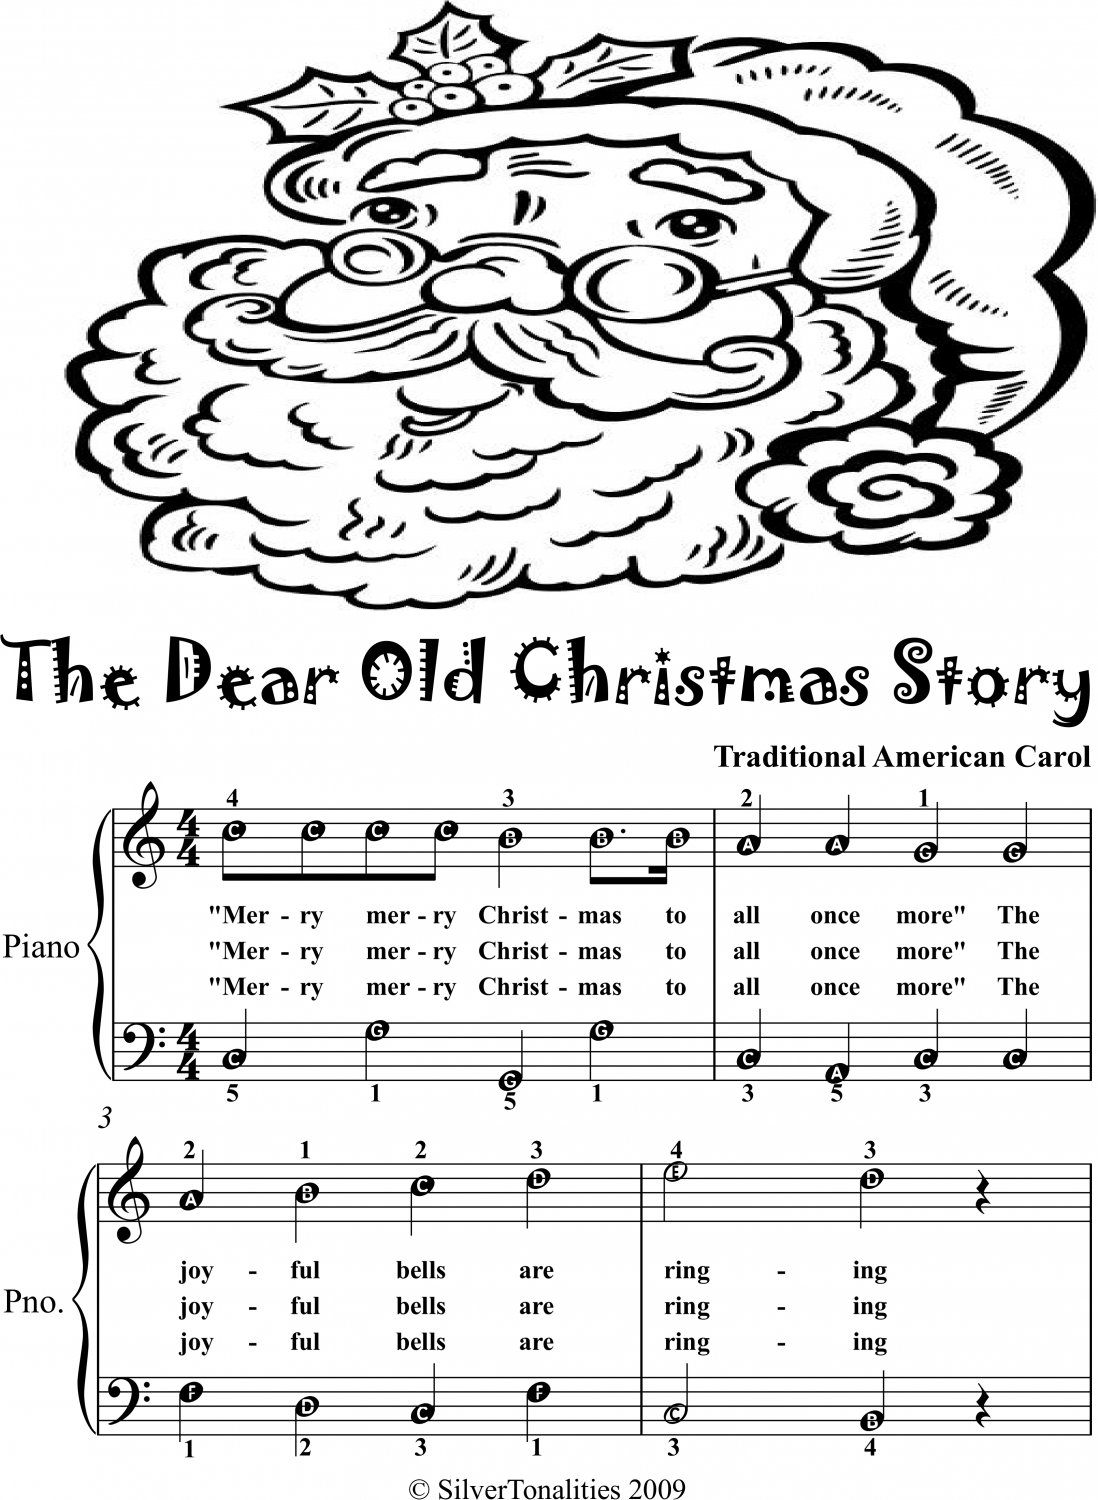 Dear Old Christmas Story Easy Piano Sheet Music 2nd Edition